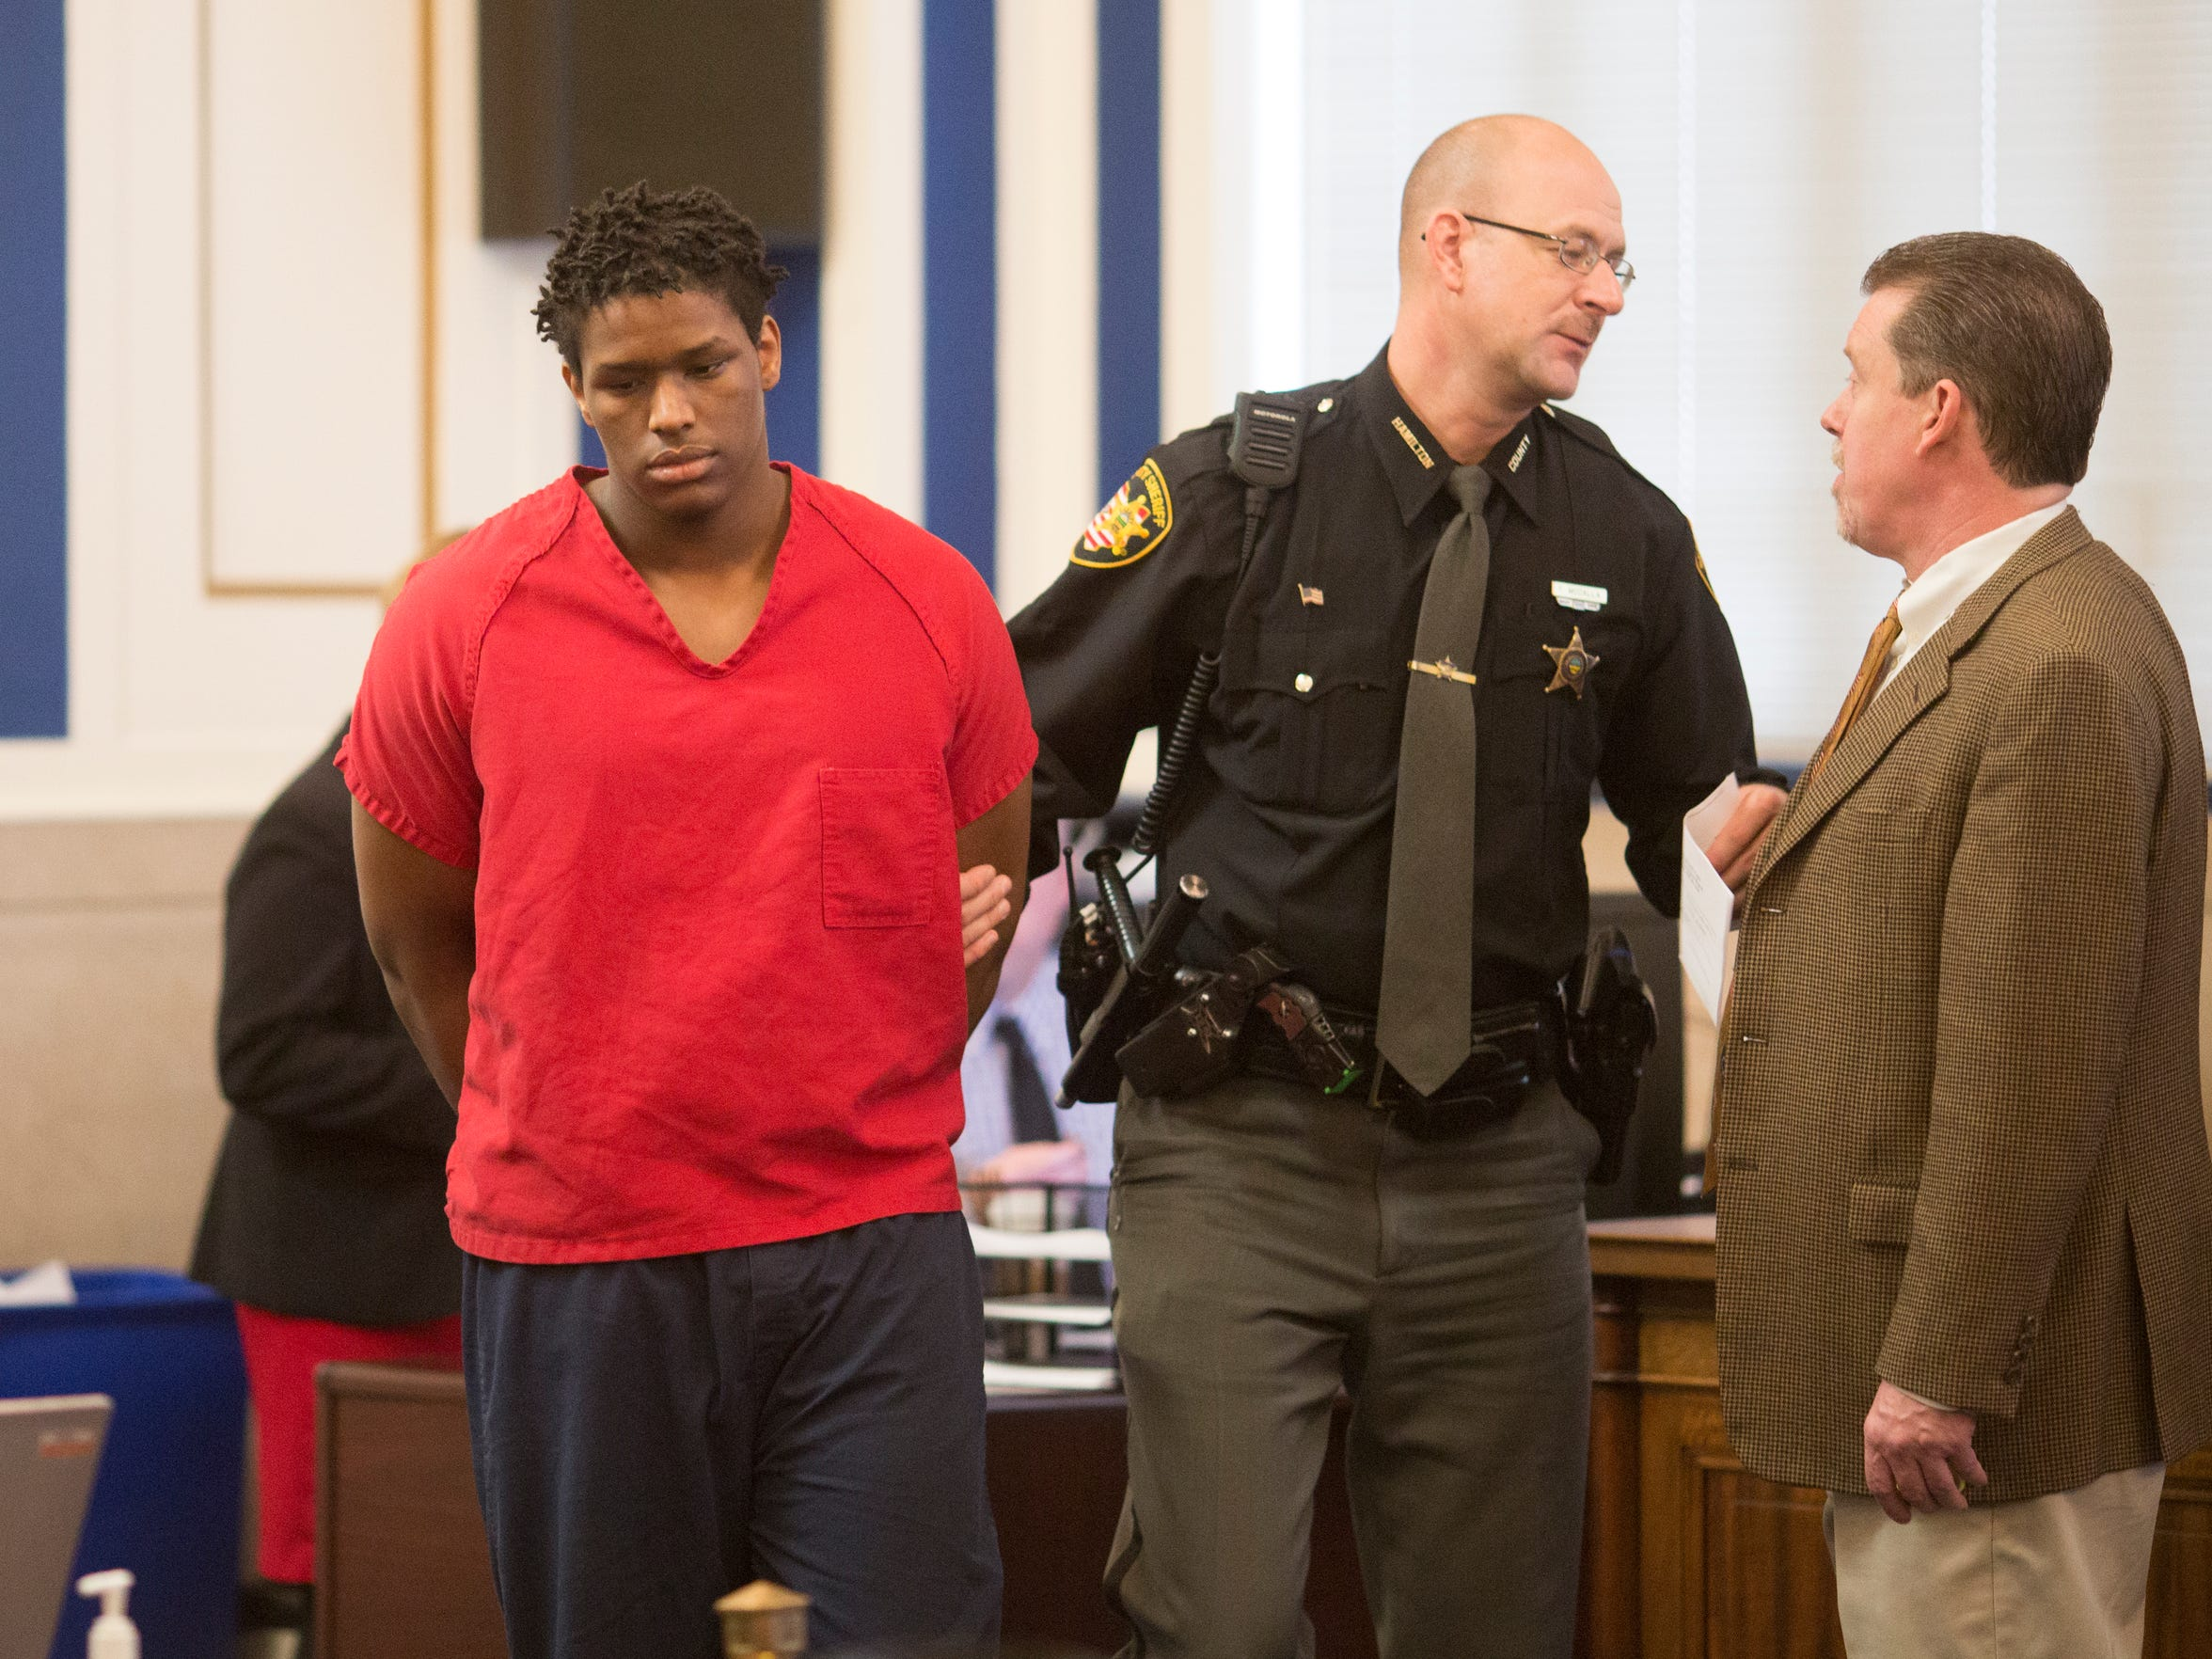 Javon Coulter, 16, enters Judge Megan E. Shanahan's courtroom to take a plea agreement in the shooting death of Suliman Ahmed Abdul-Mutakallim, 39, two years ago.